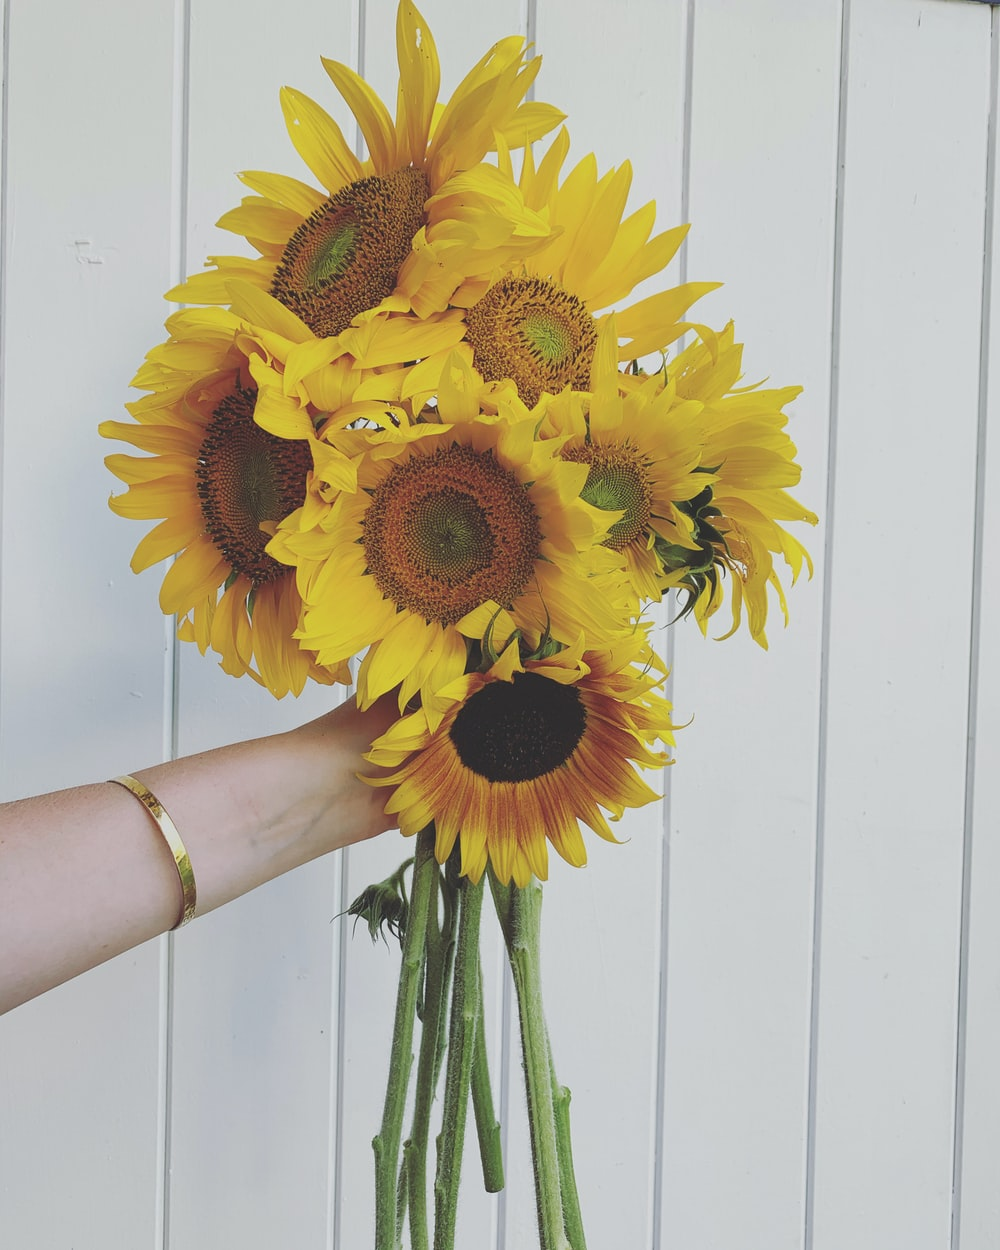 person holding sunflower bouquet in front of white wall